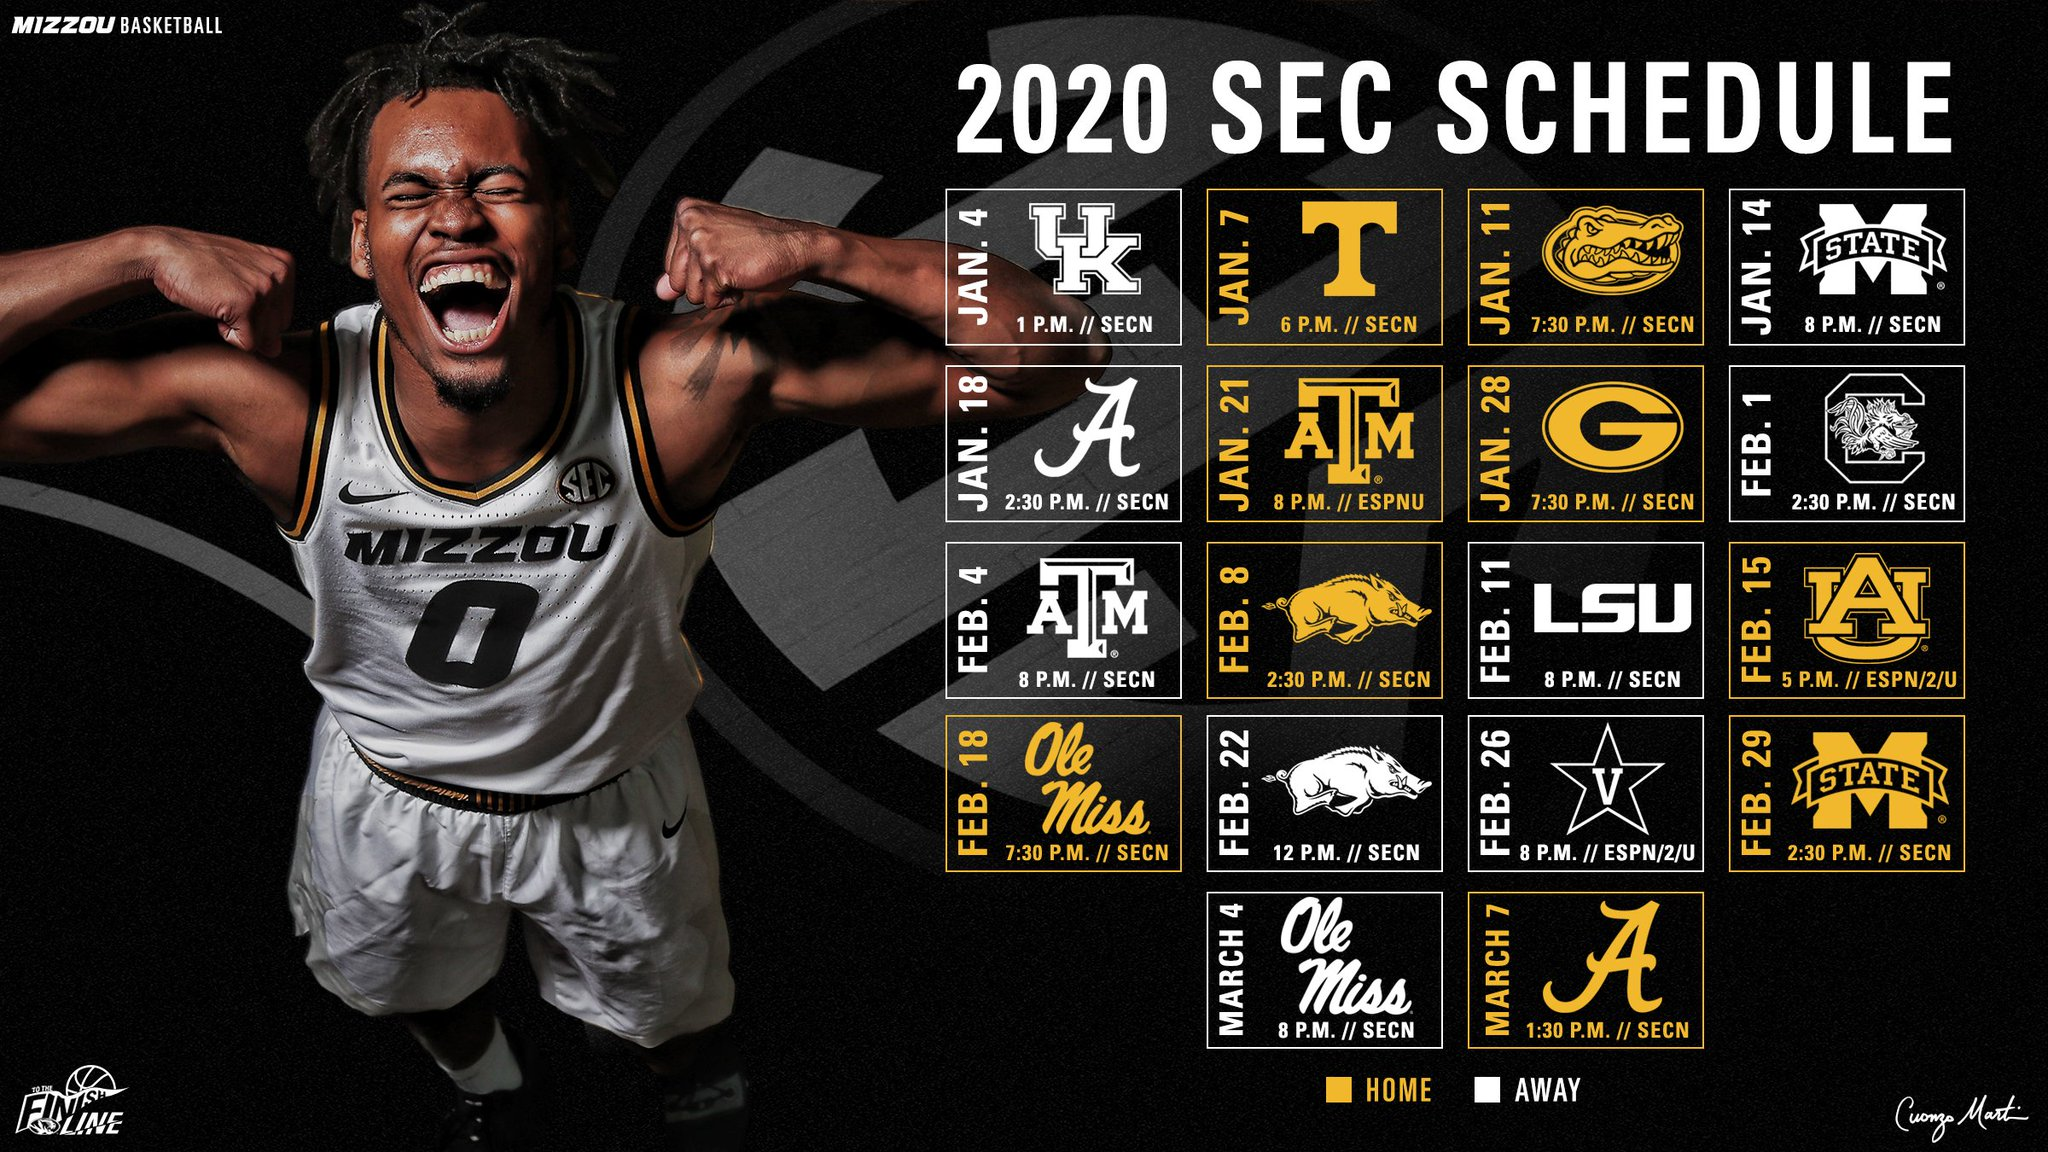 Missouri Tigers NCAA Basketball: #Mizzou's 2020 @SEC Schedule  🗓 https://t.co/Lecht9D33b  #ToTheFinishLine.  Tweet by...